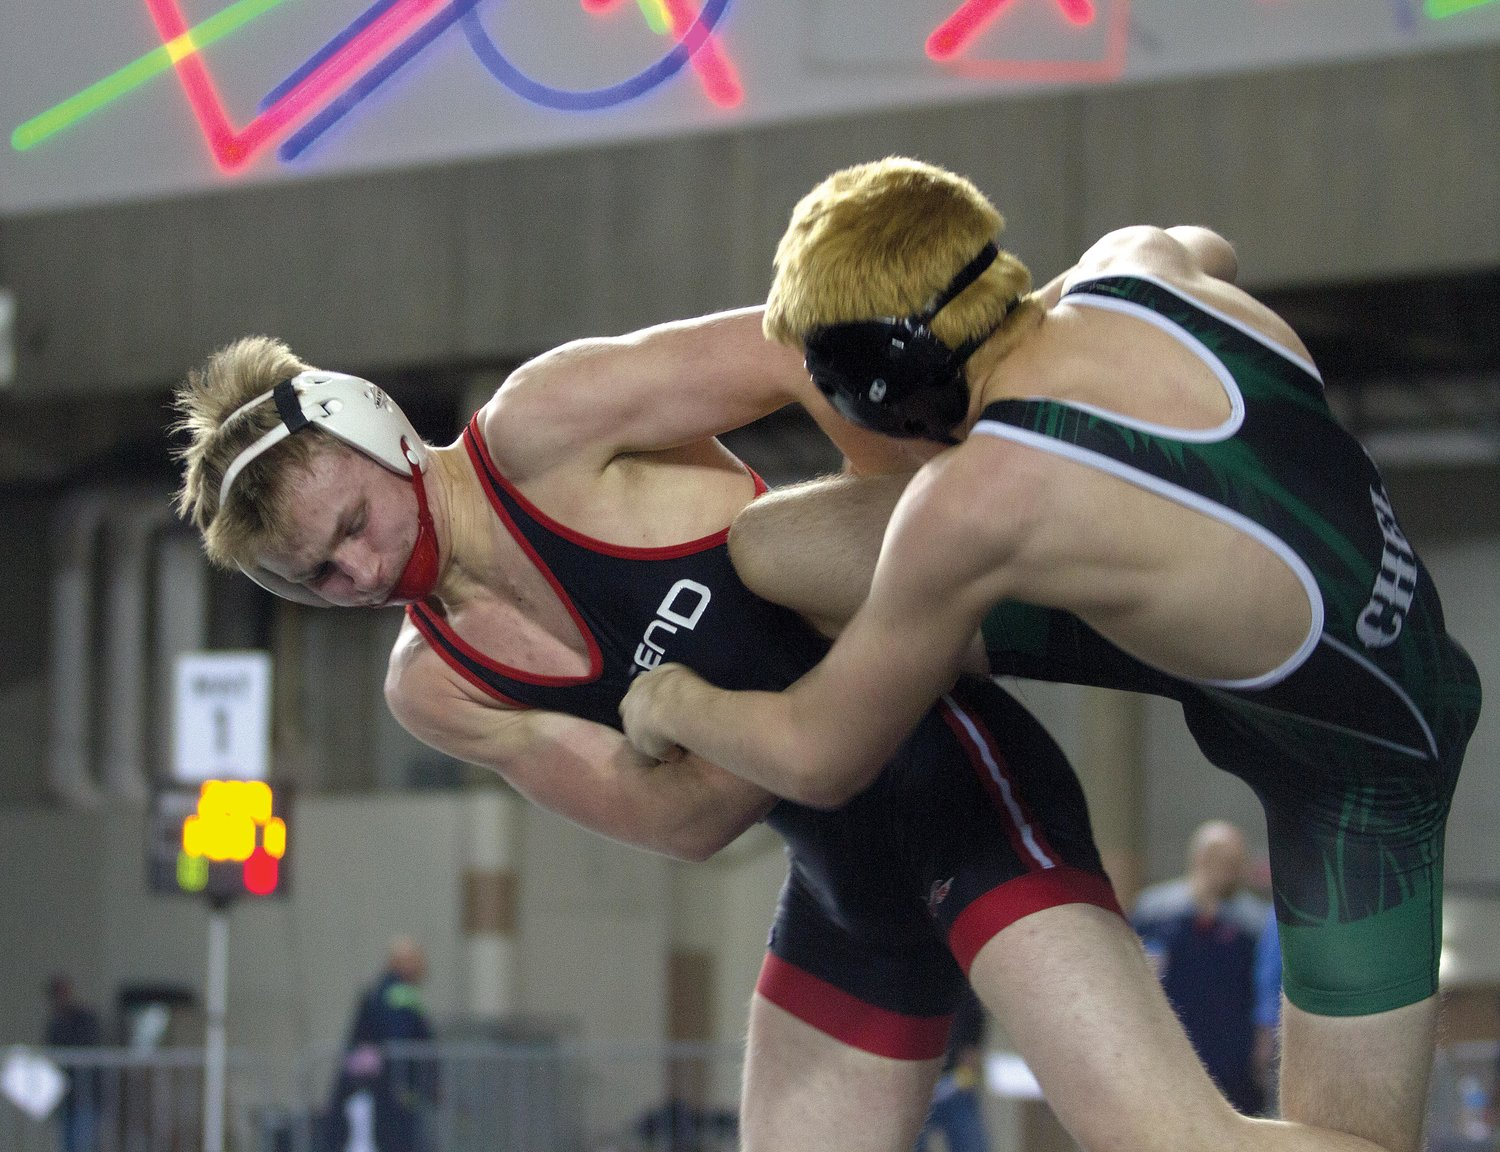 Port Townsend sophomore Odin Smith battles with Chelan sophomore Skye Malone in the 152-pound consolation first round Feb. 15. Smith won the match with a pin in 2:46.